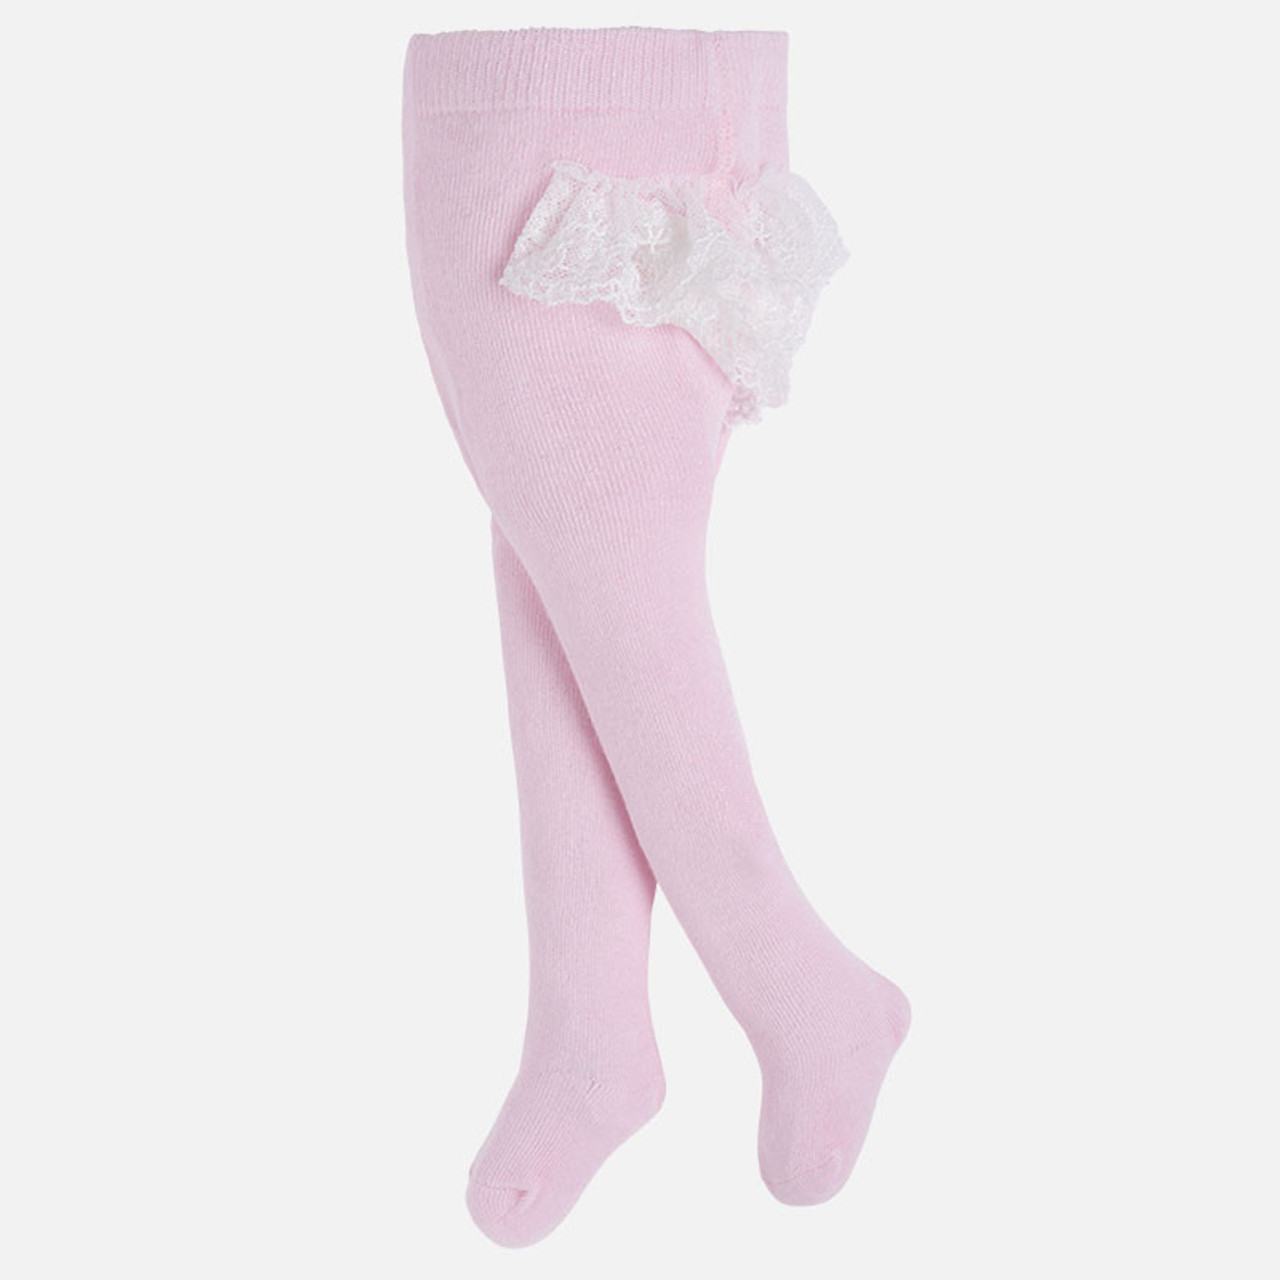 a6b62d8ab2102 Mayoral Baby Girls Frilly Dress Tights - Baby Rose - Two Birdees